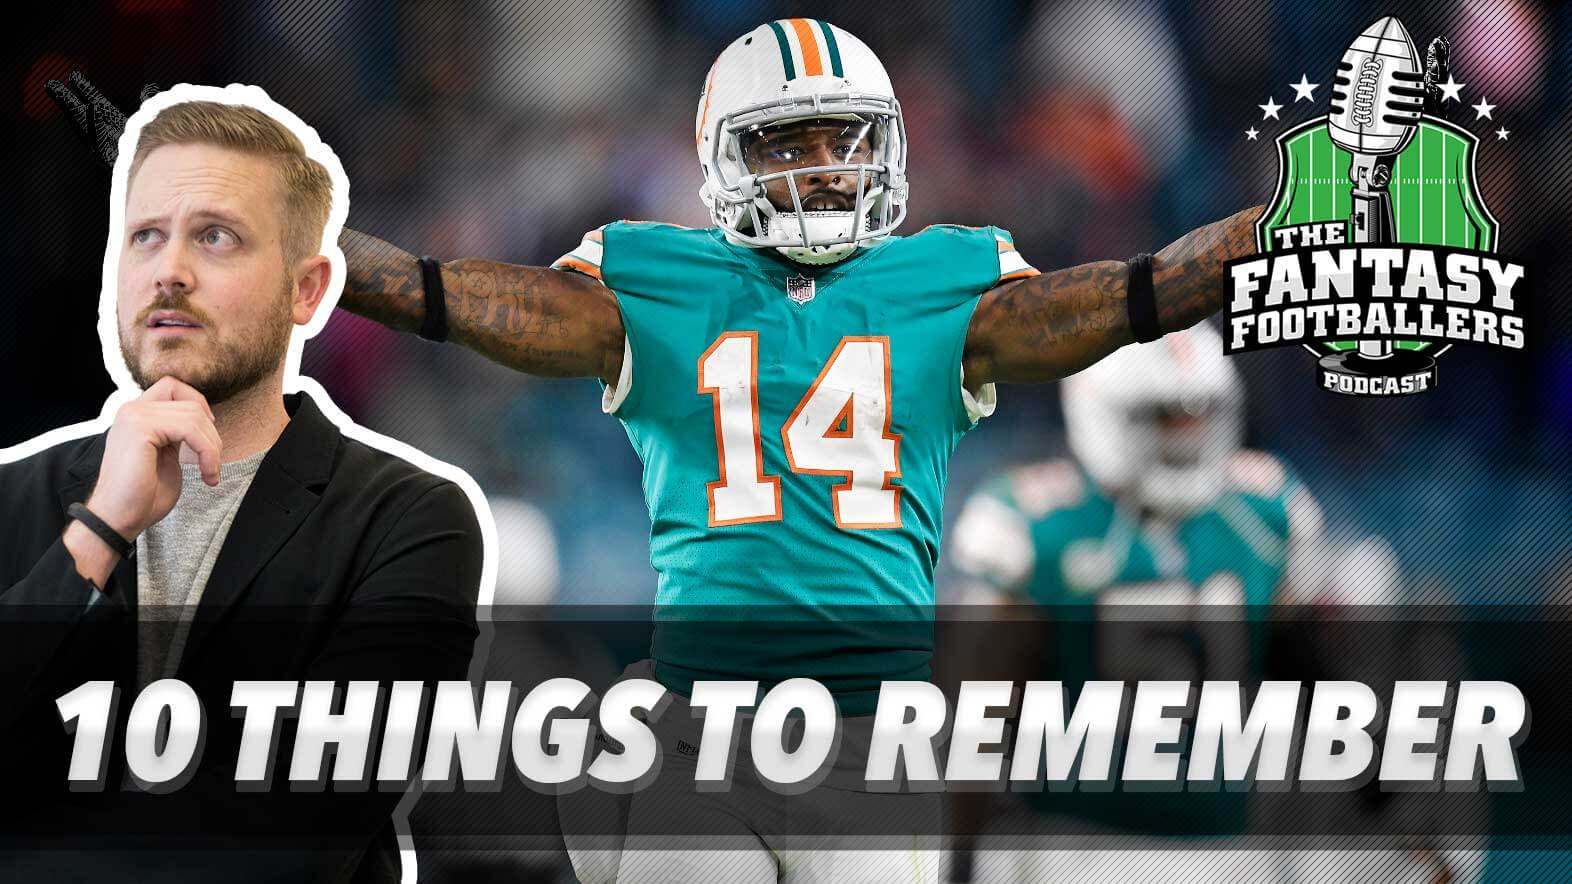 10 Things to Remember from 2017 - Ep. #521